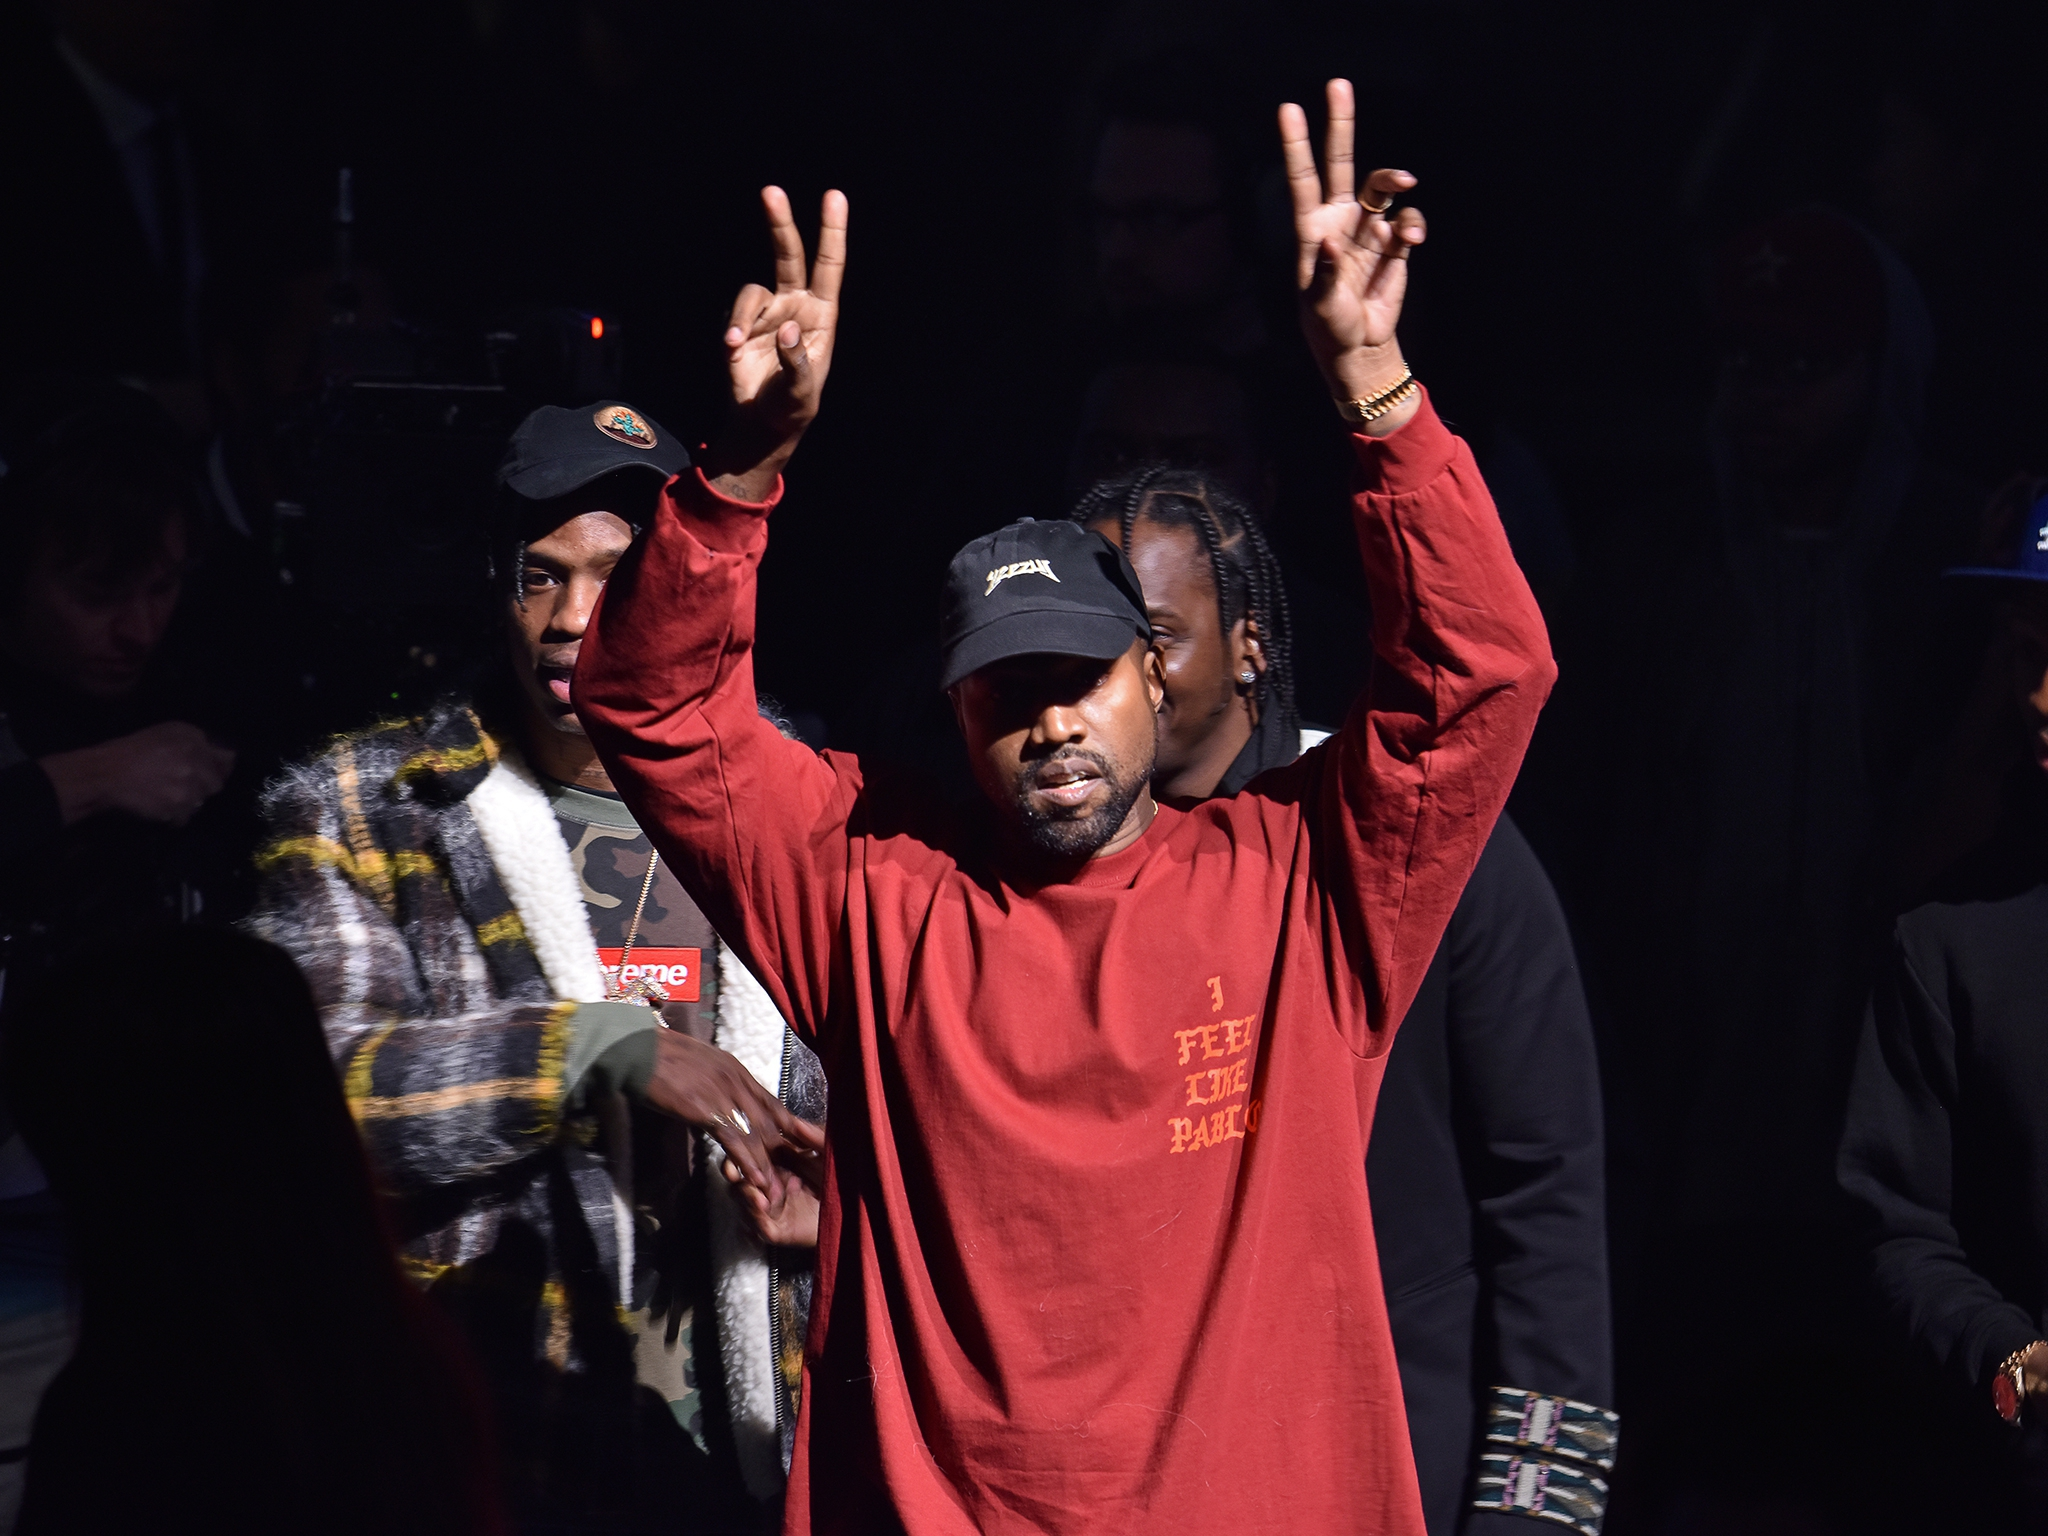 kanye west wallpapers images photos pictures backgrounds